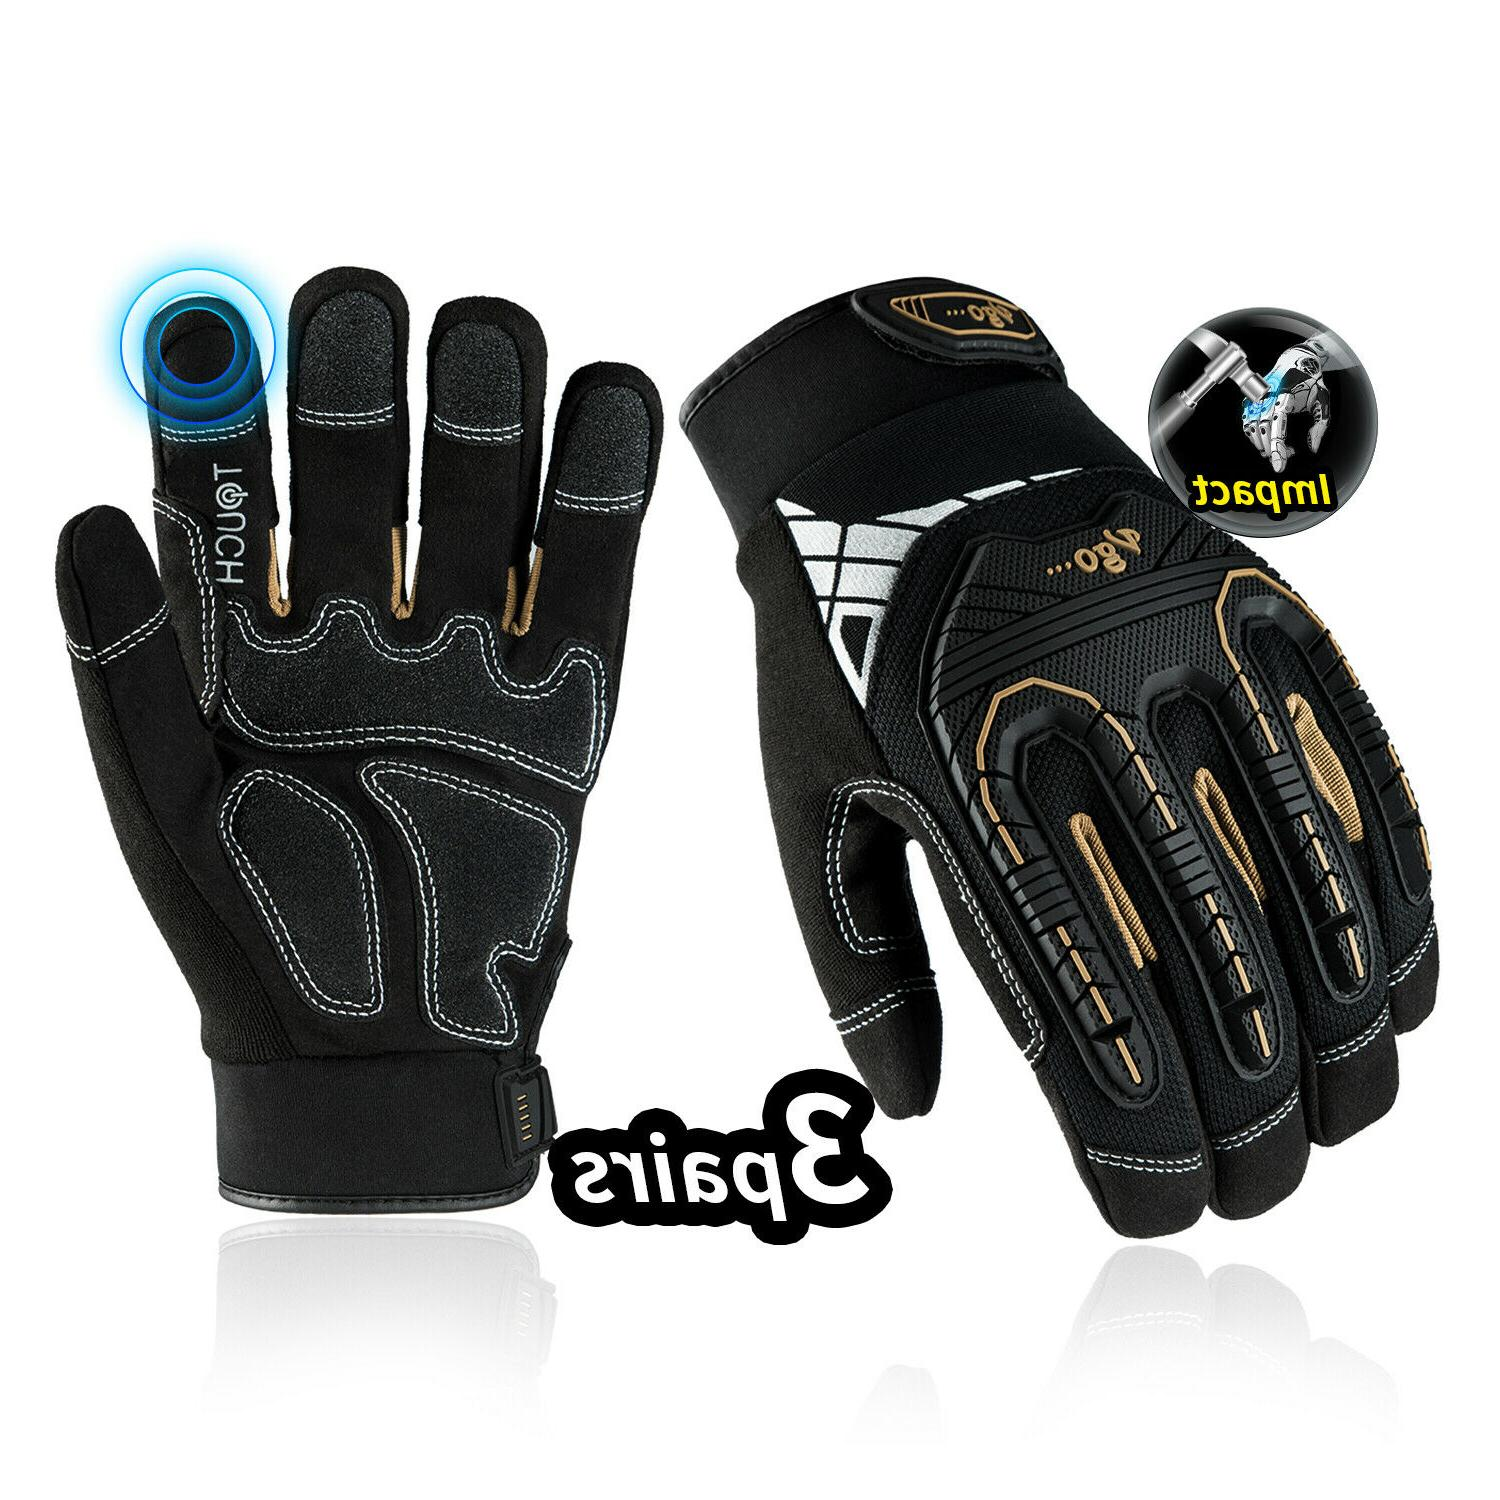 Vgo 3Pairs Heavy Duty Impact-Absorb Work Gloves Rigger Glove